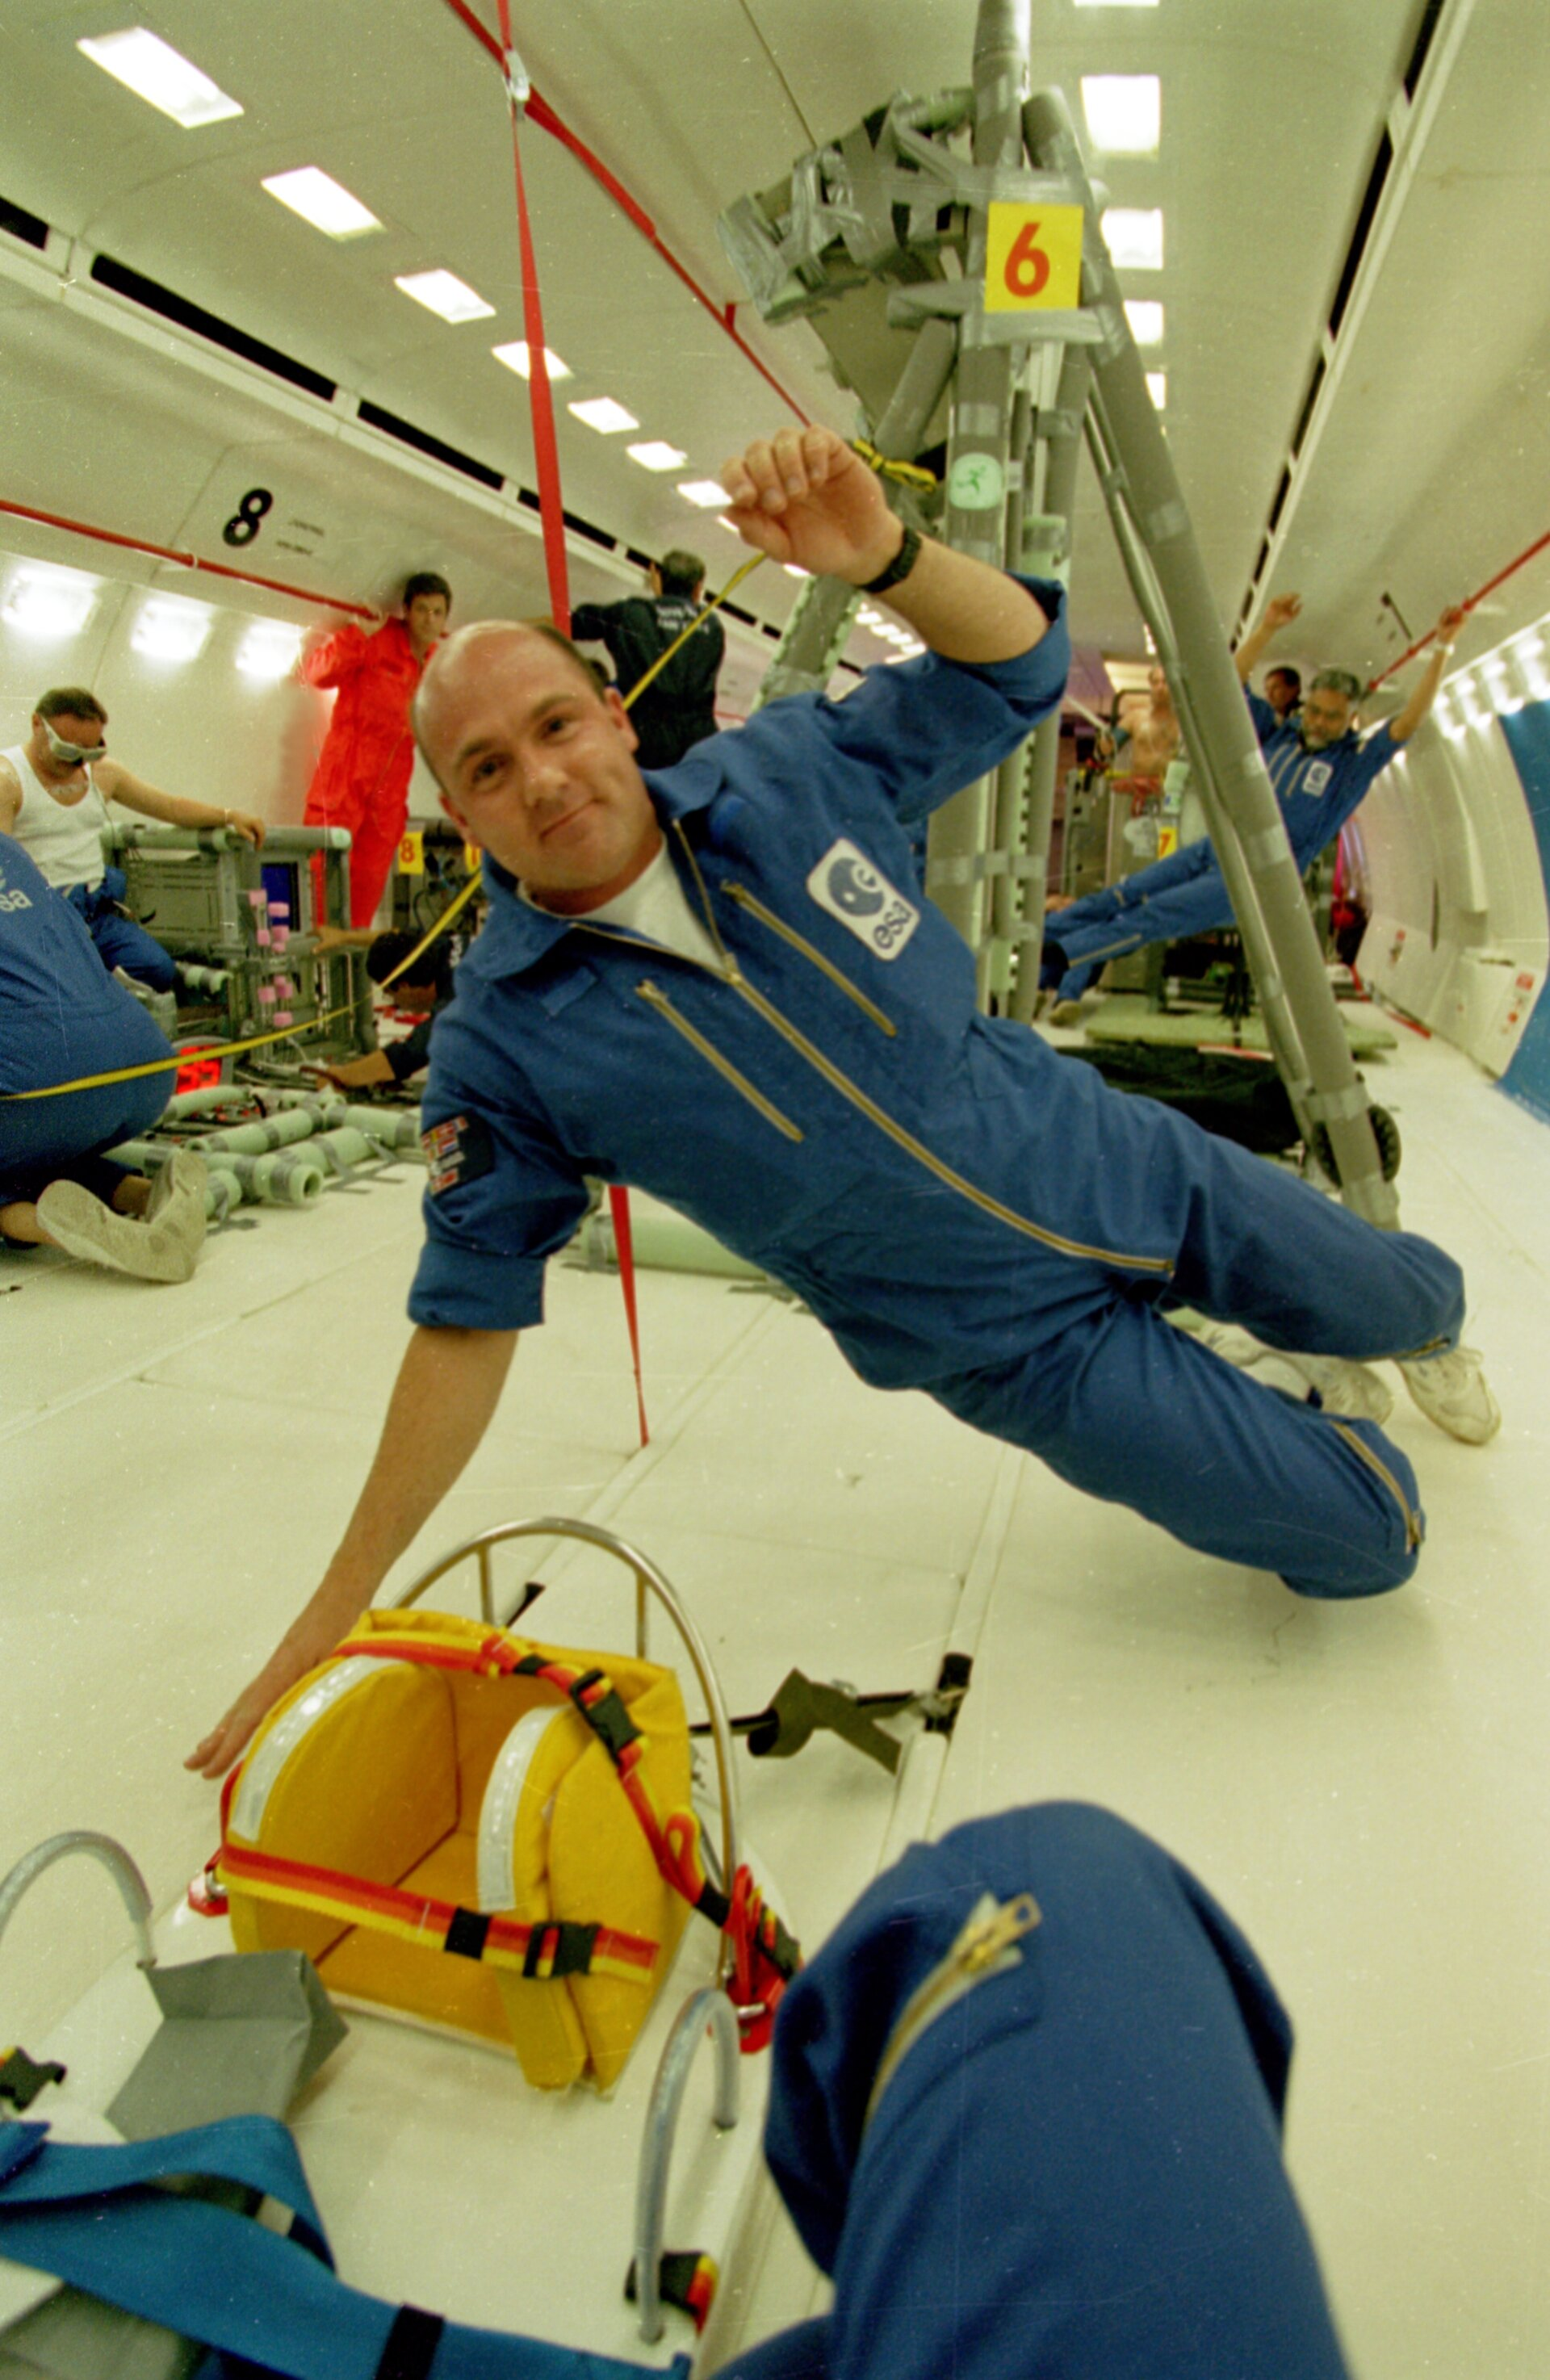 Loss of bone mass is a consequence of weightlessness conditions